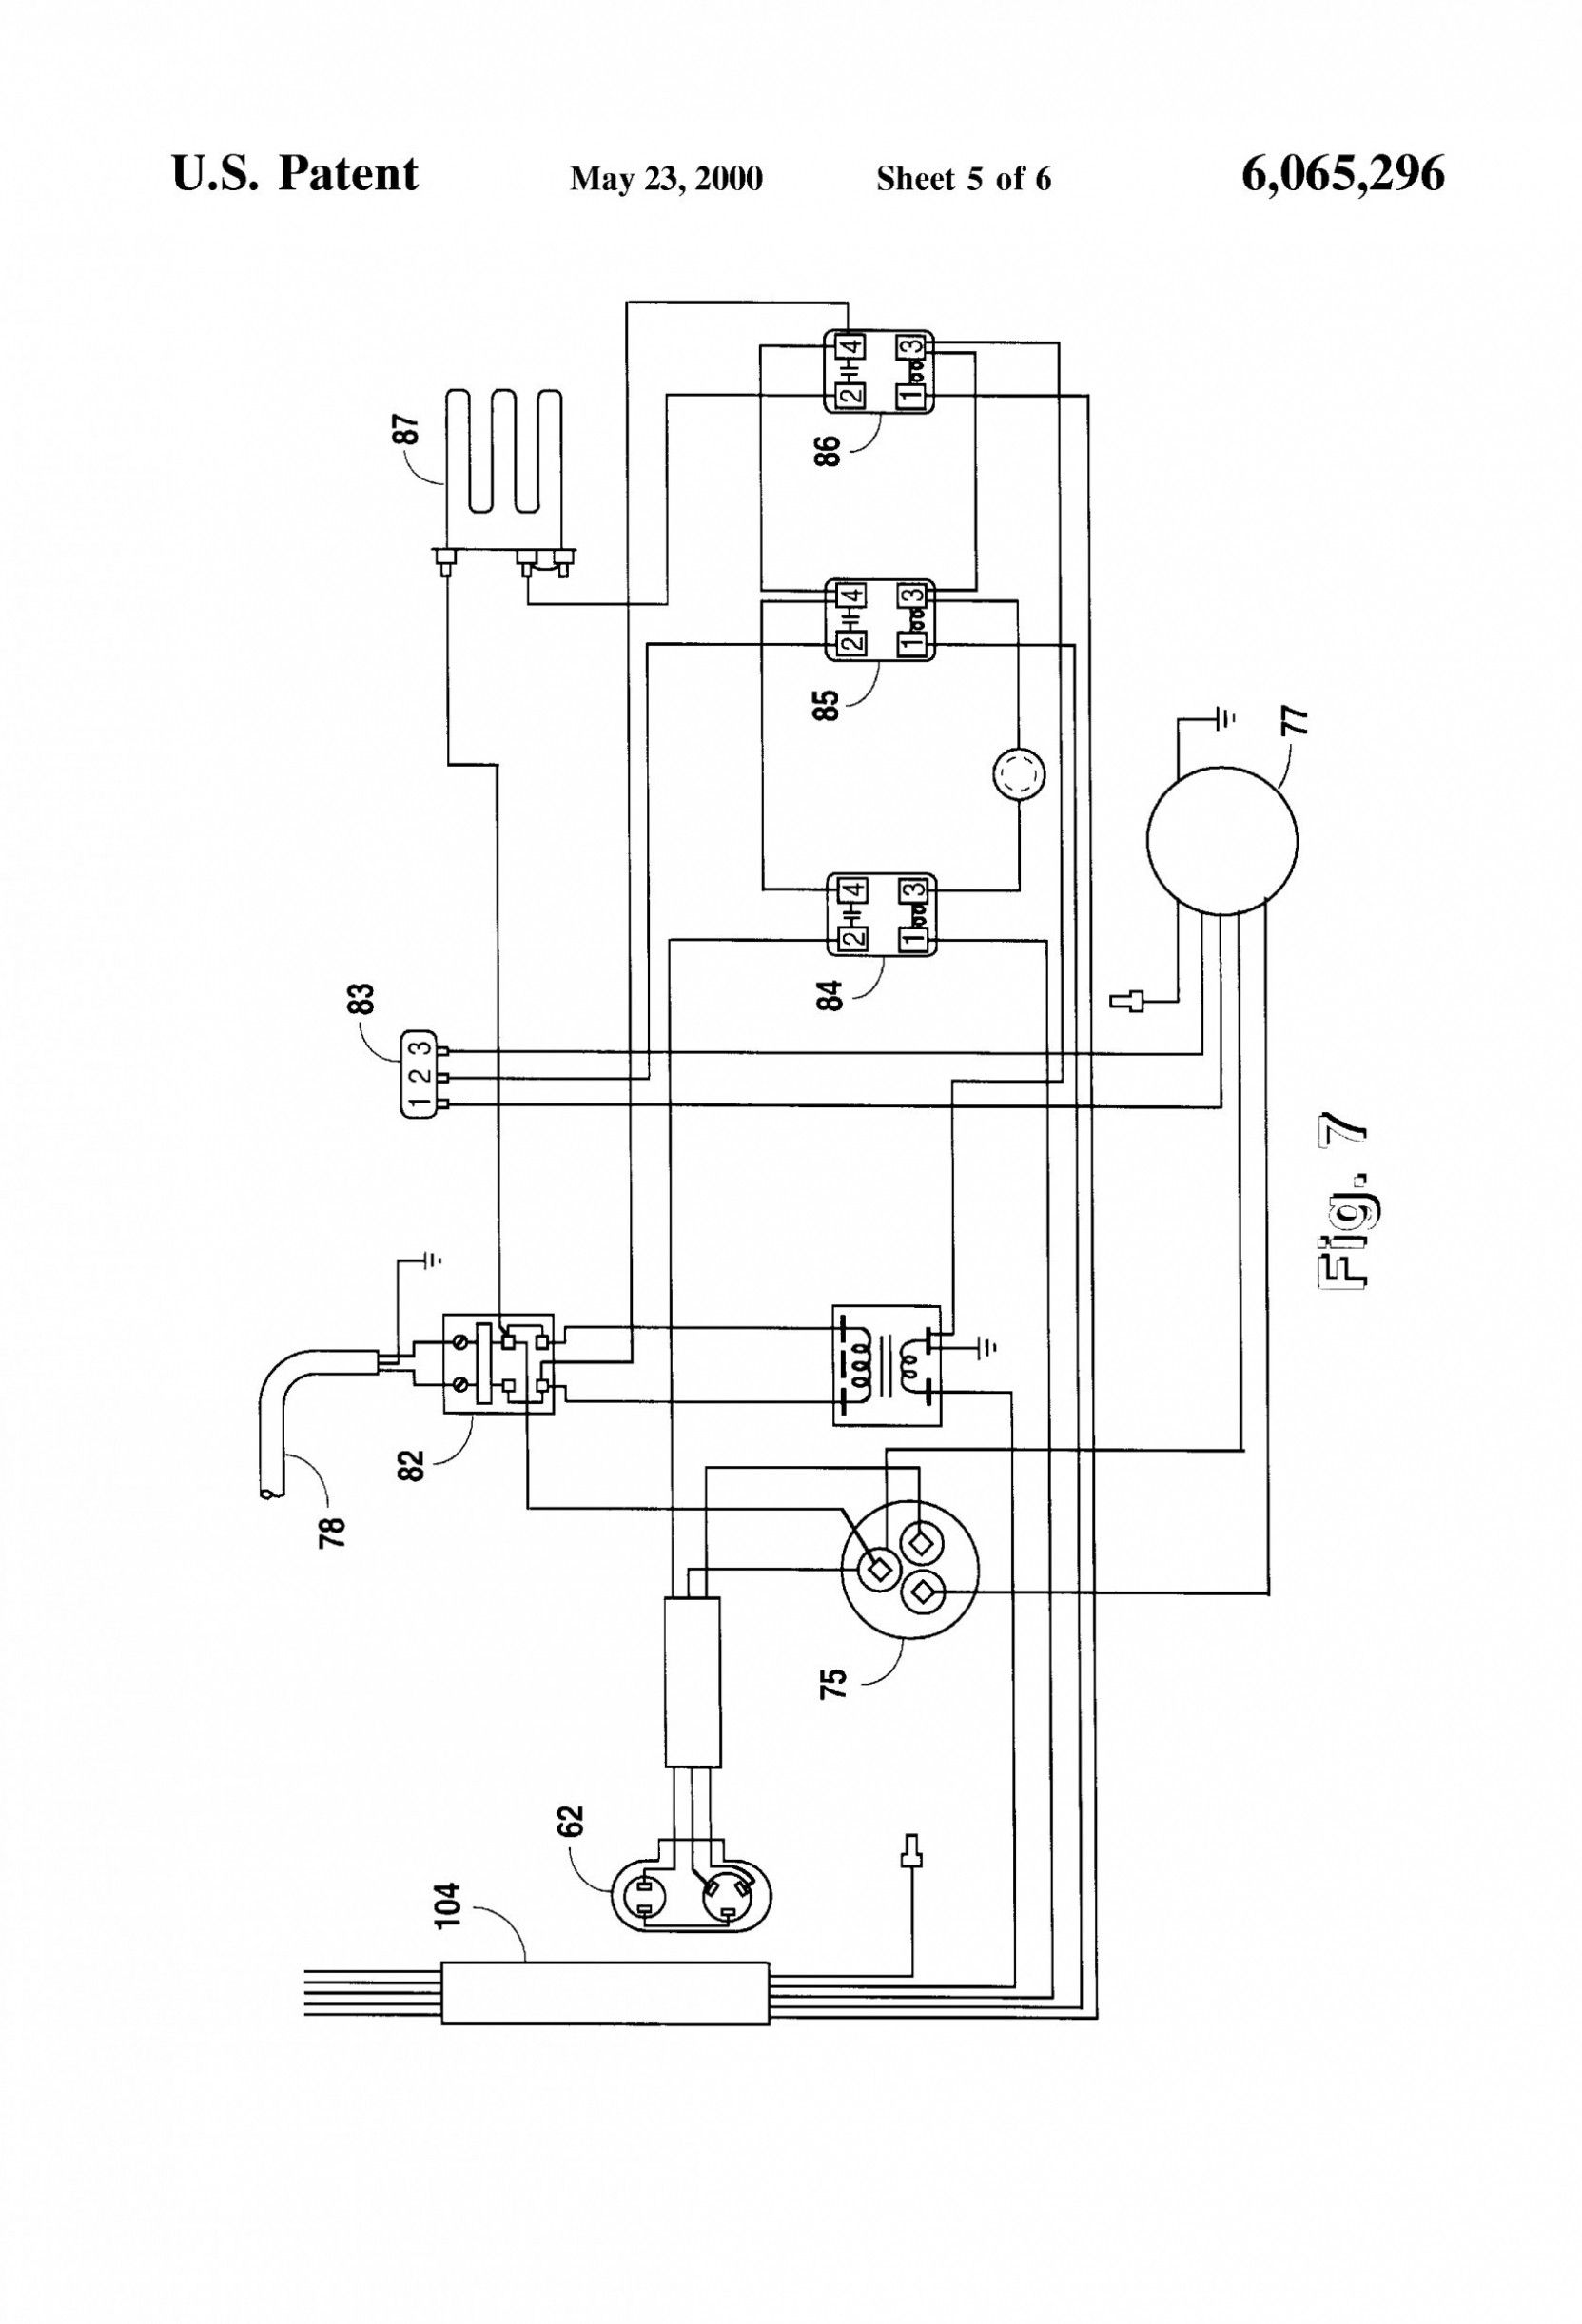 Schematic Diagram Of Central Air Conditioning System